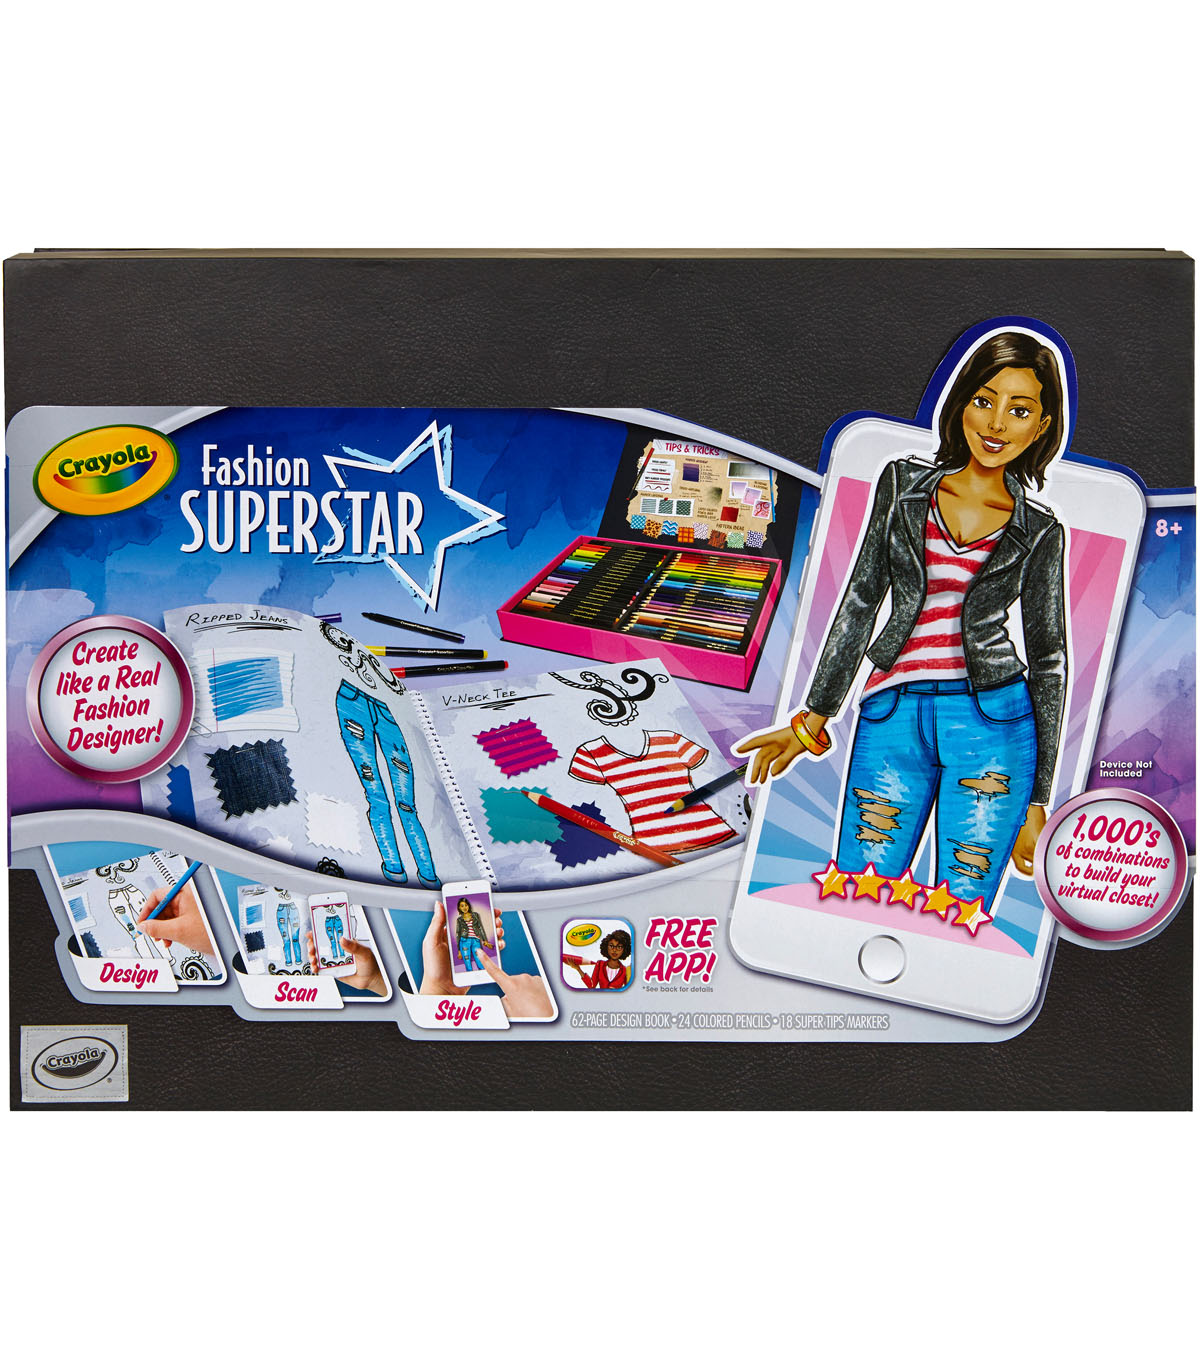 Crayola Fashion Superstar Designer Kit